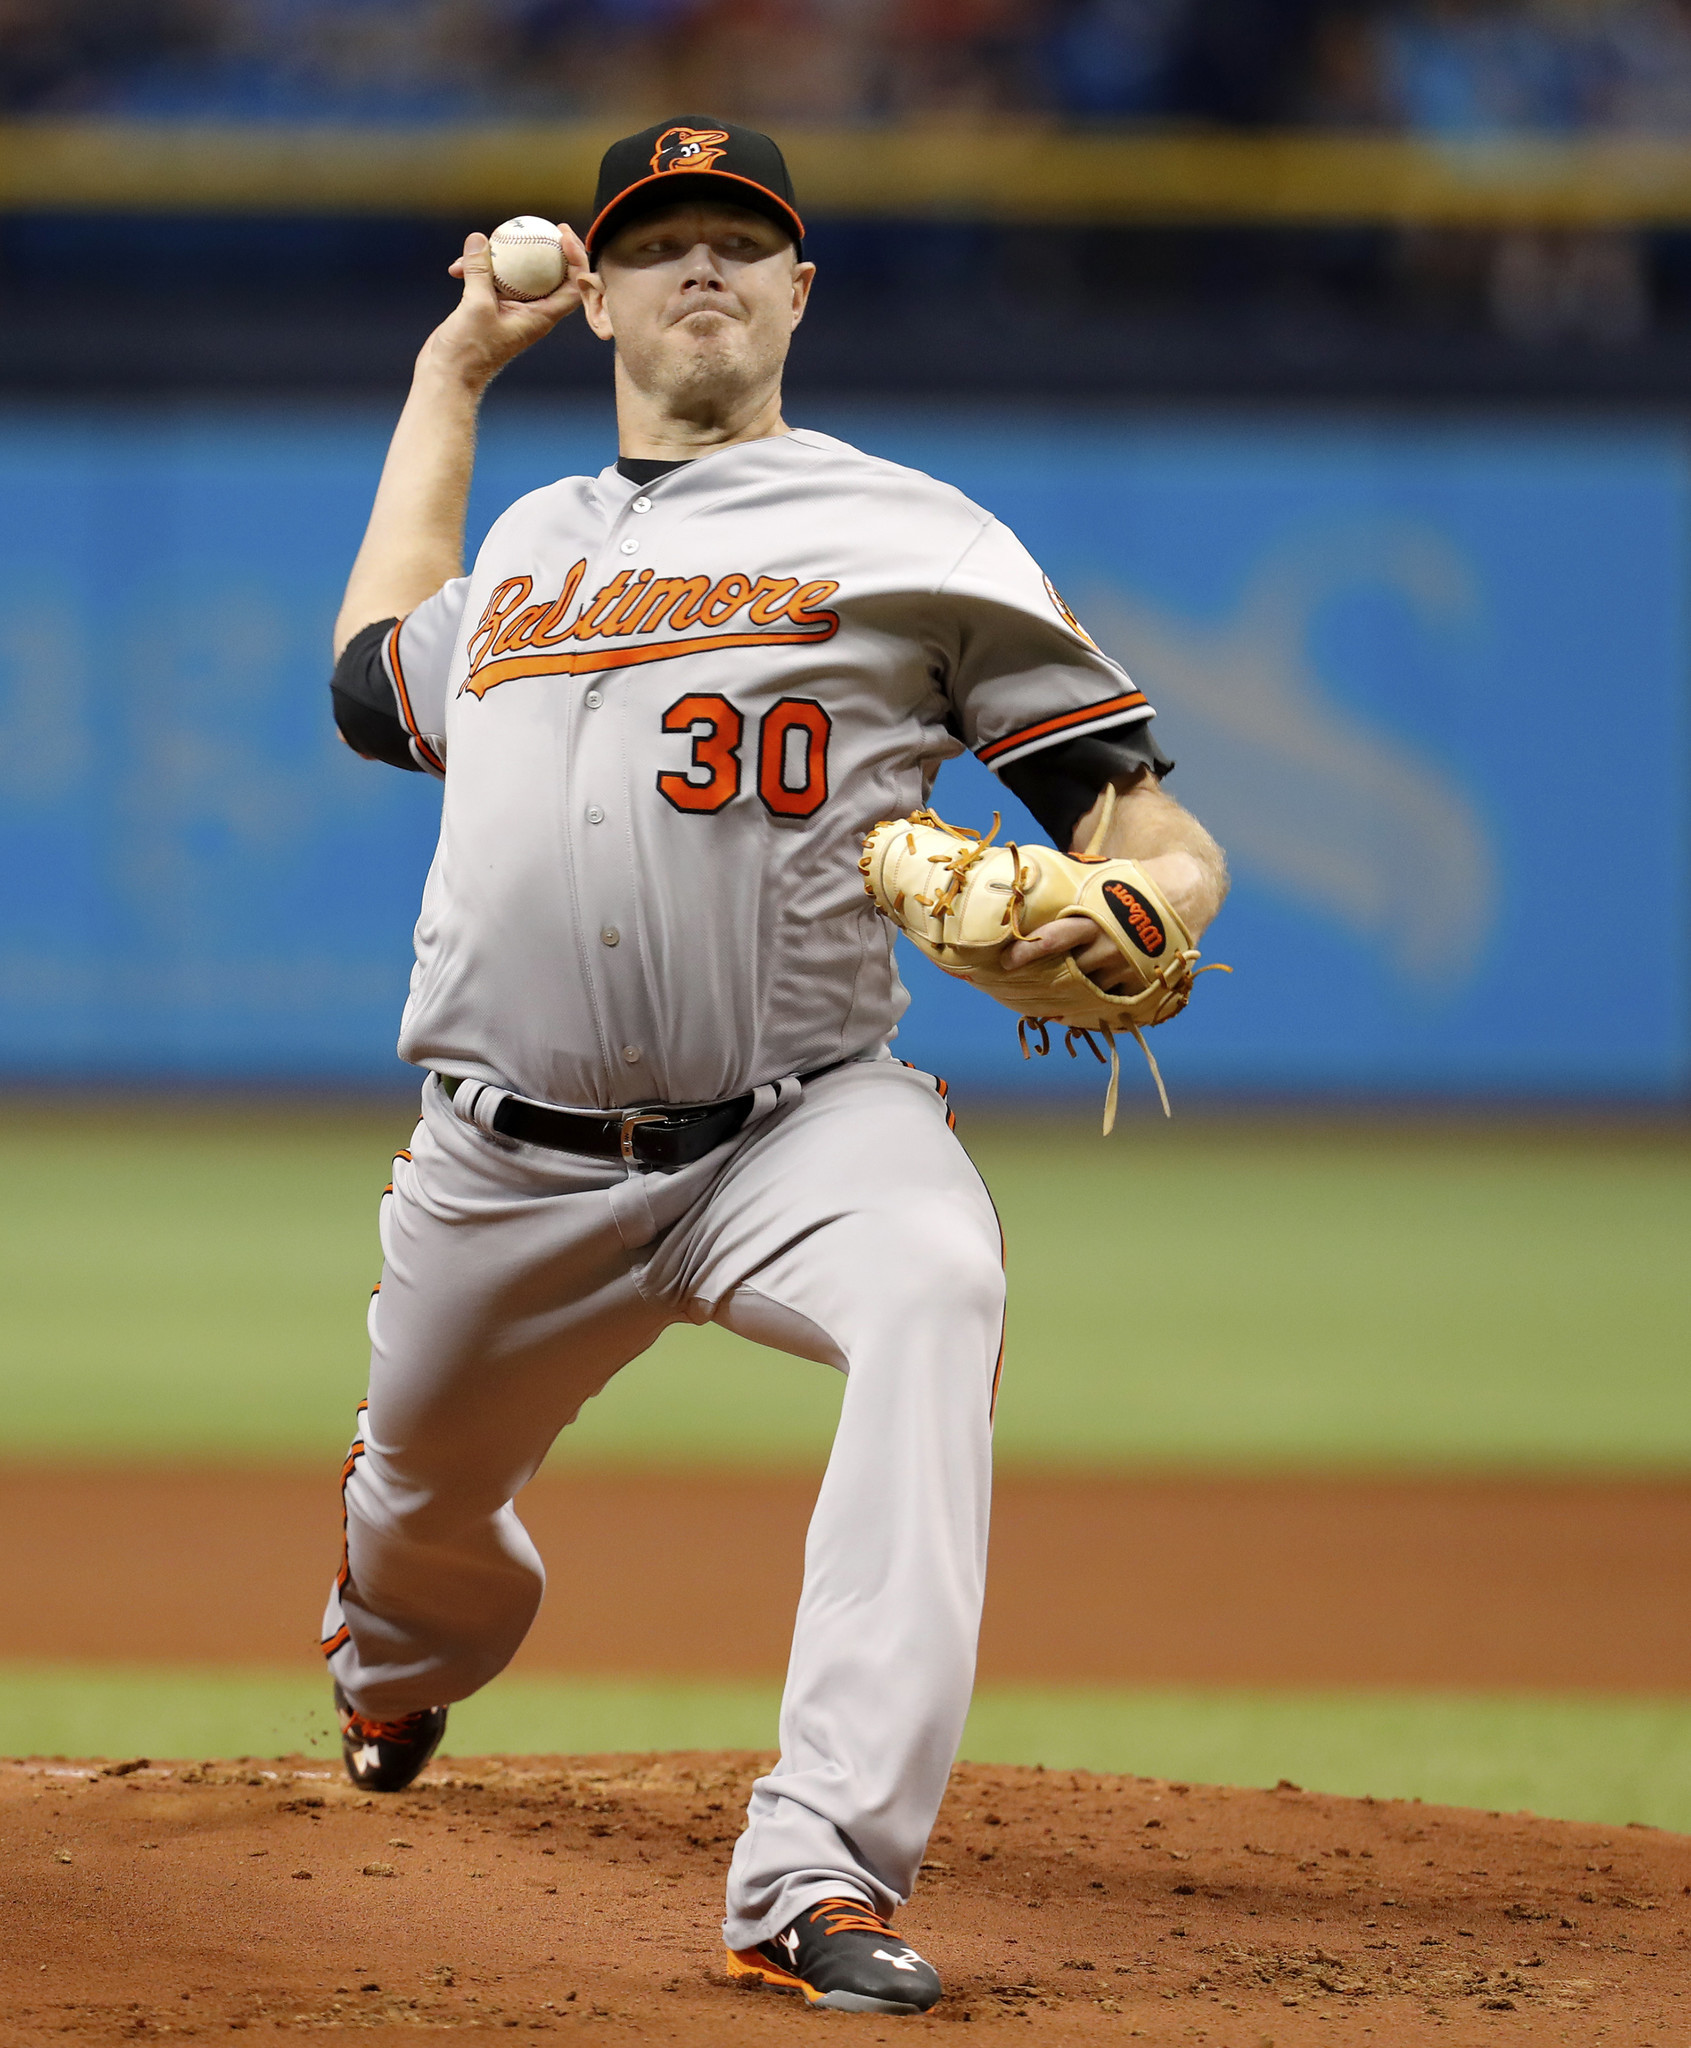 Bal-orioles-see-improvement-from-chris-tillman-in-victory-over-rays-20170625